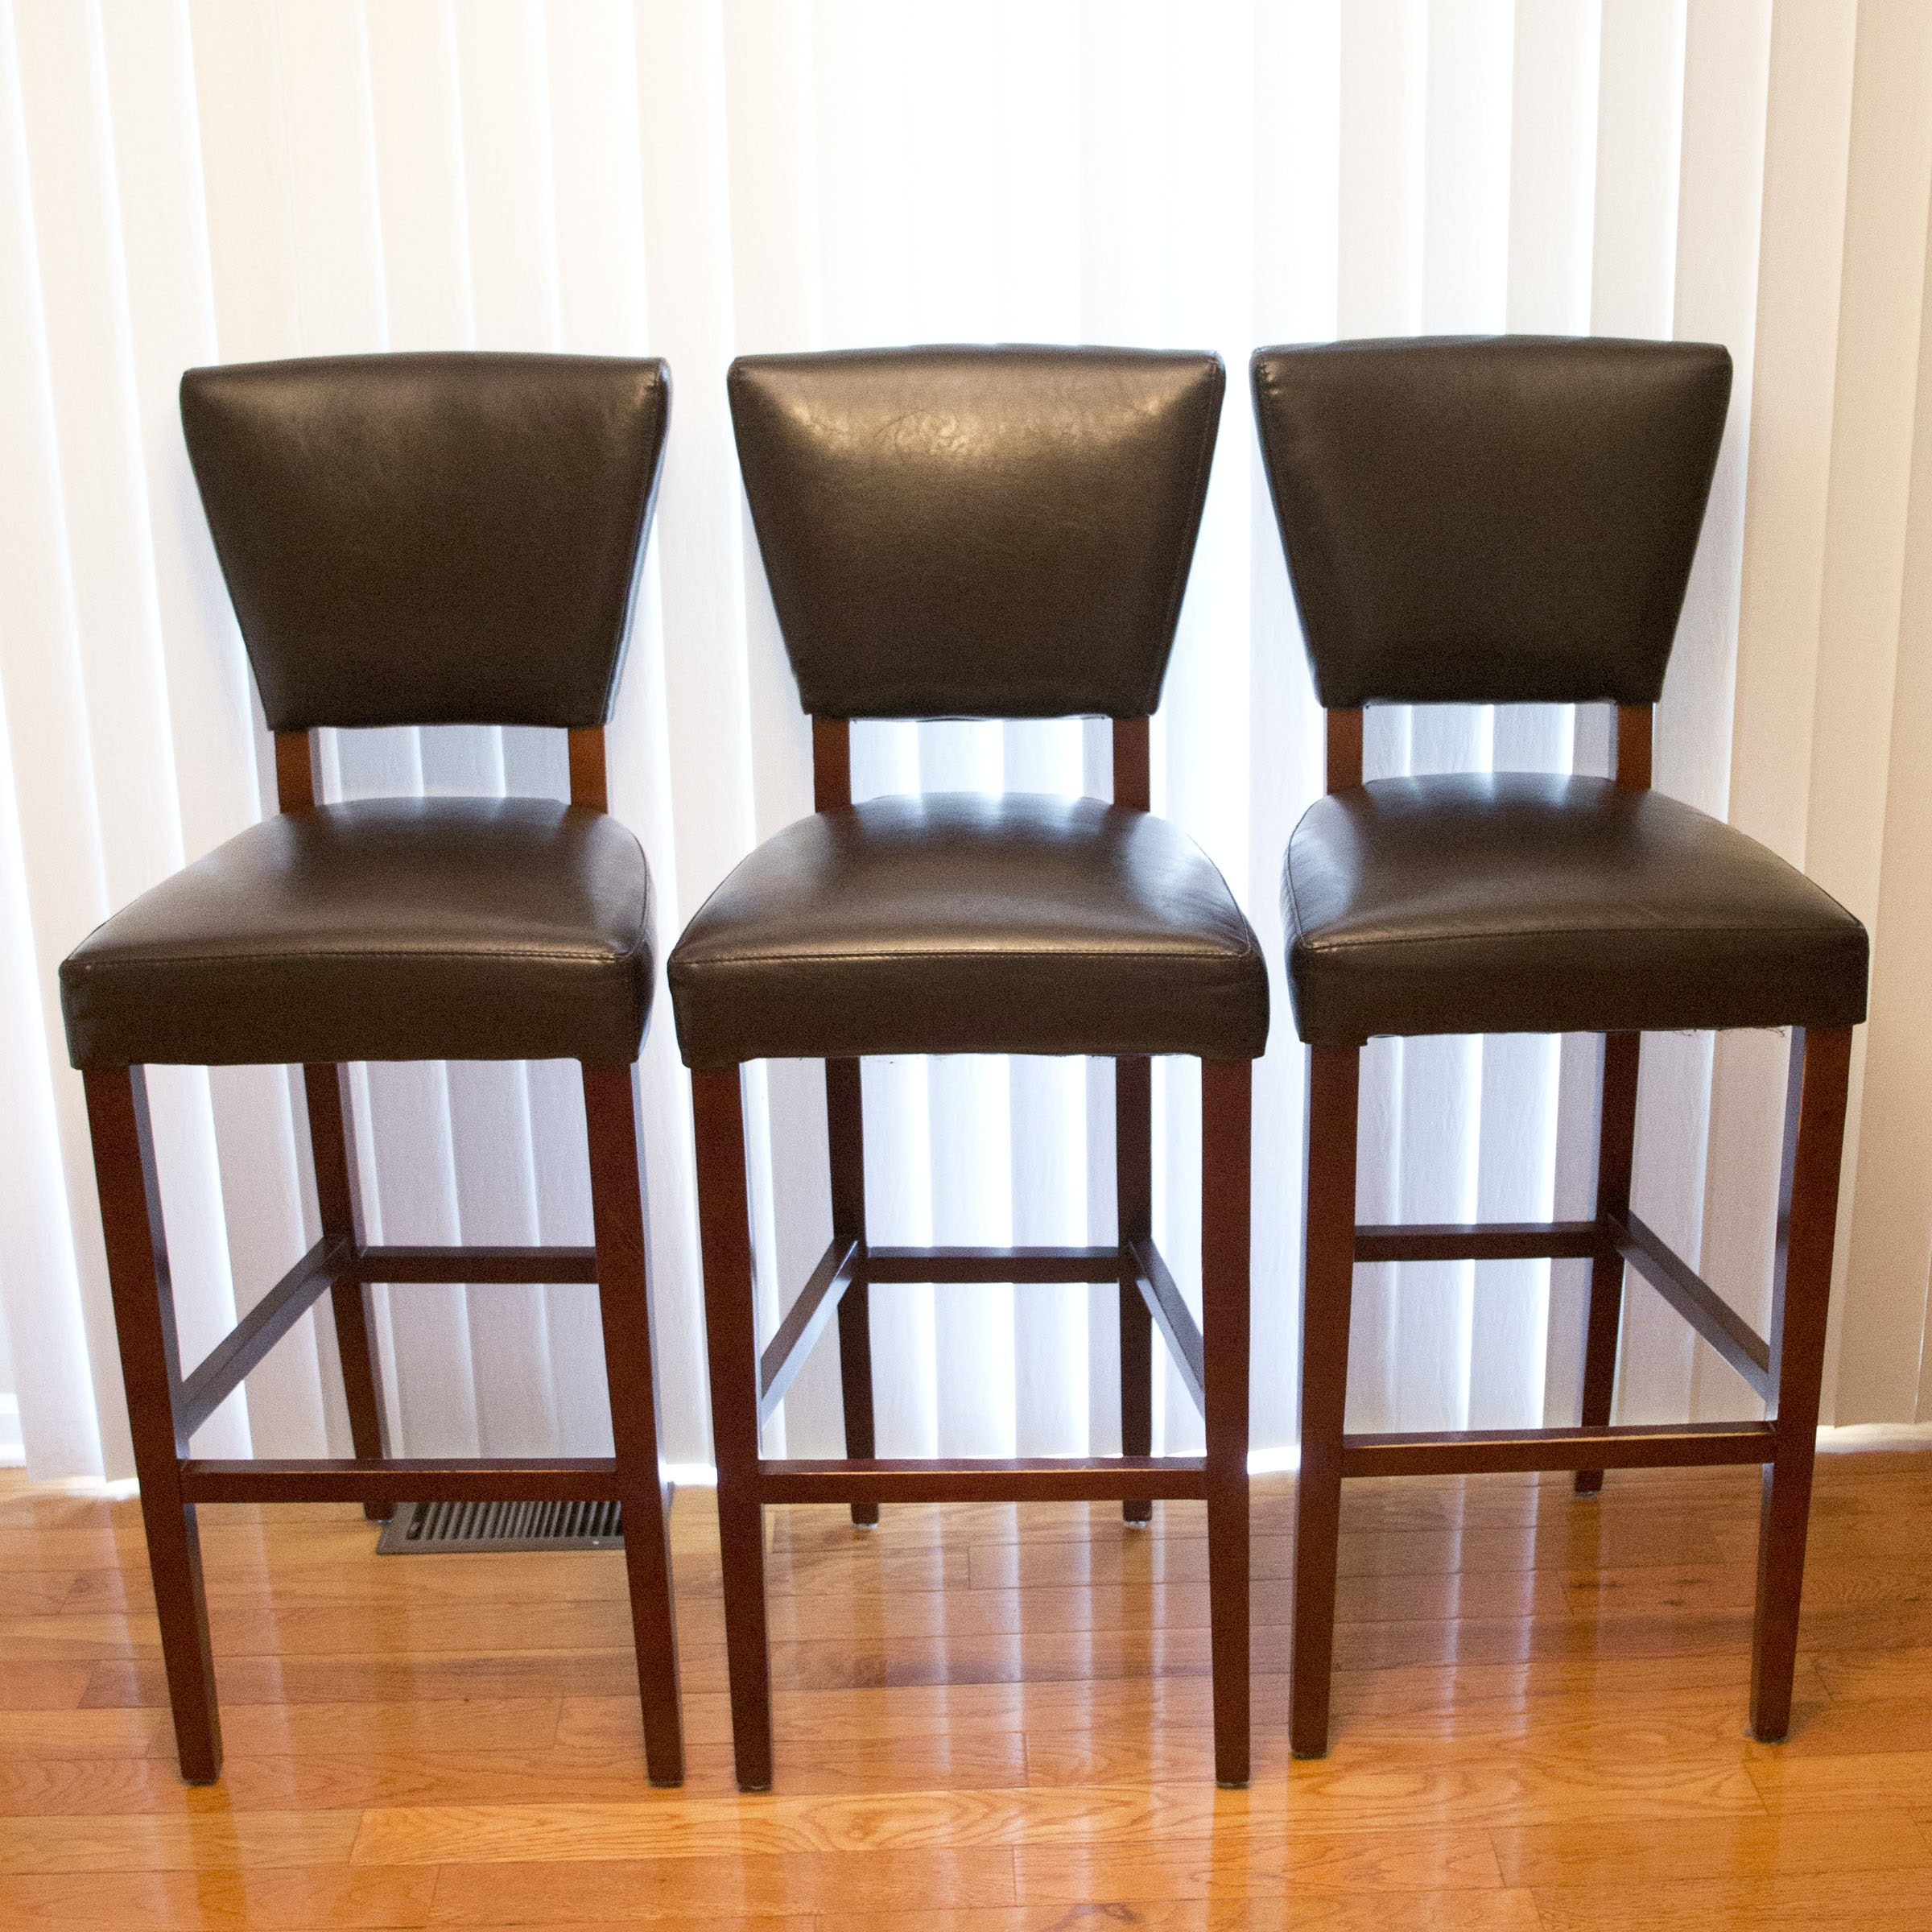 bonded leather bar stools by pier 1 imports